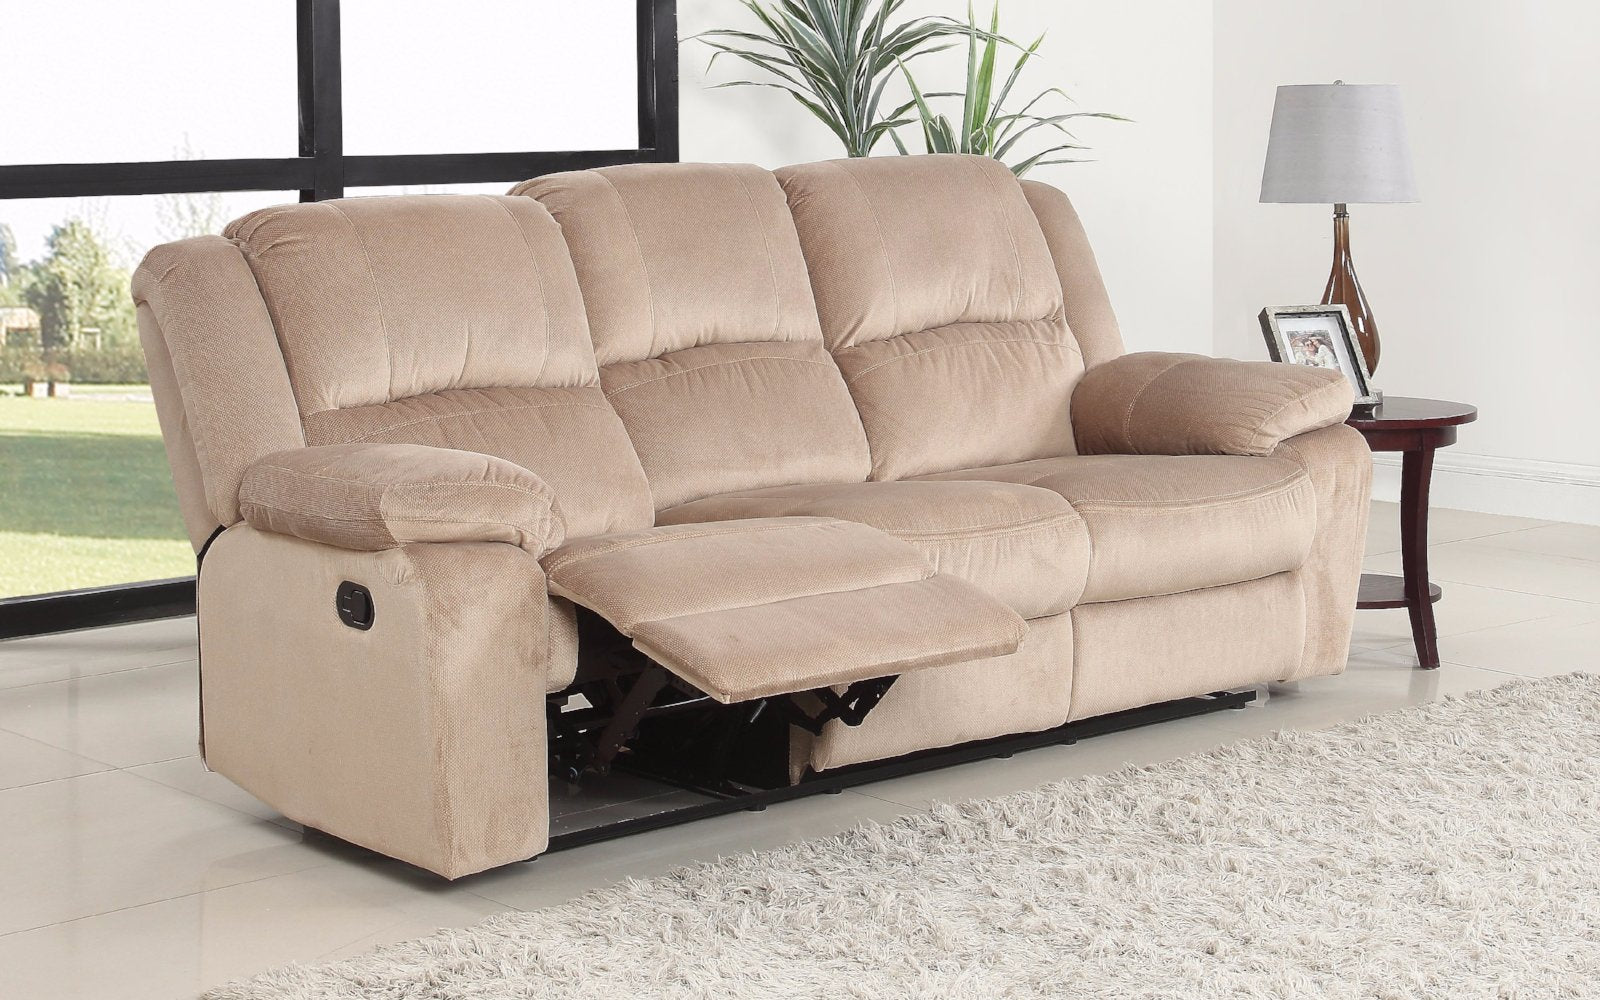 Asturias Traditional Classic Microfiber Double Recliner Sofa